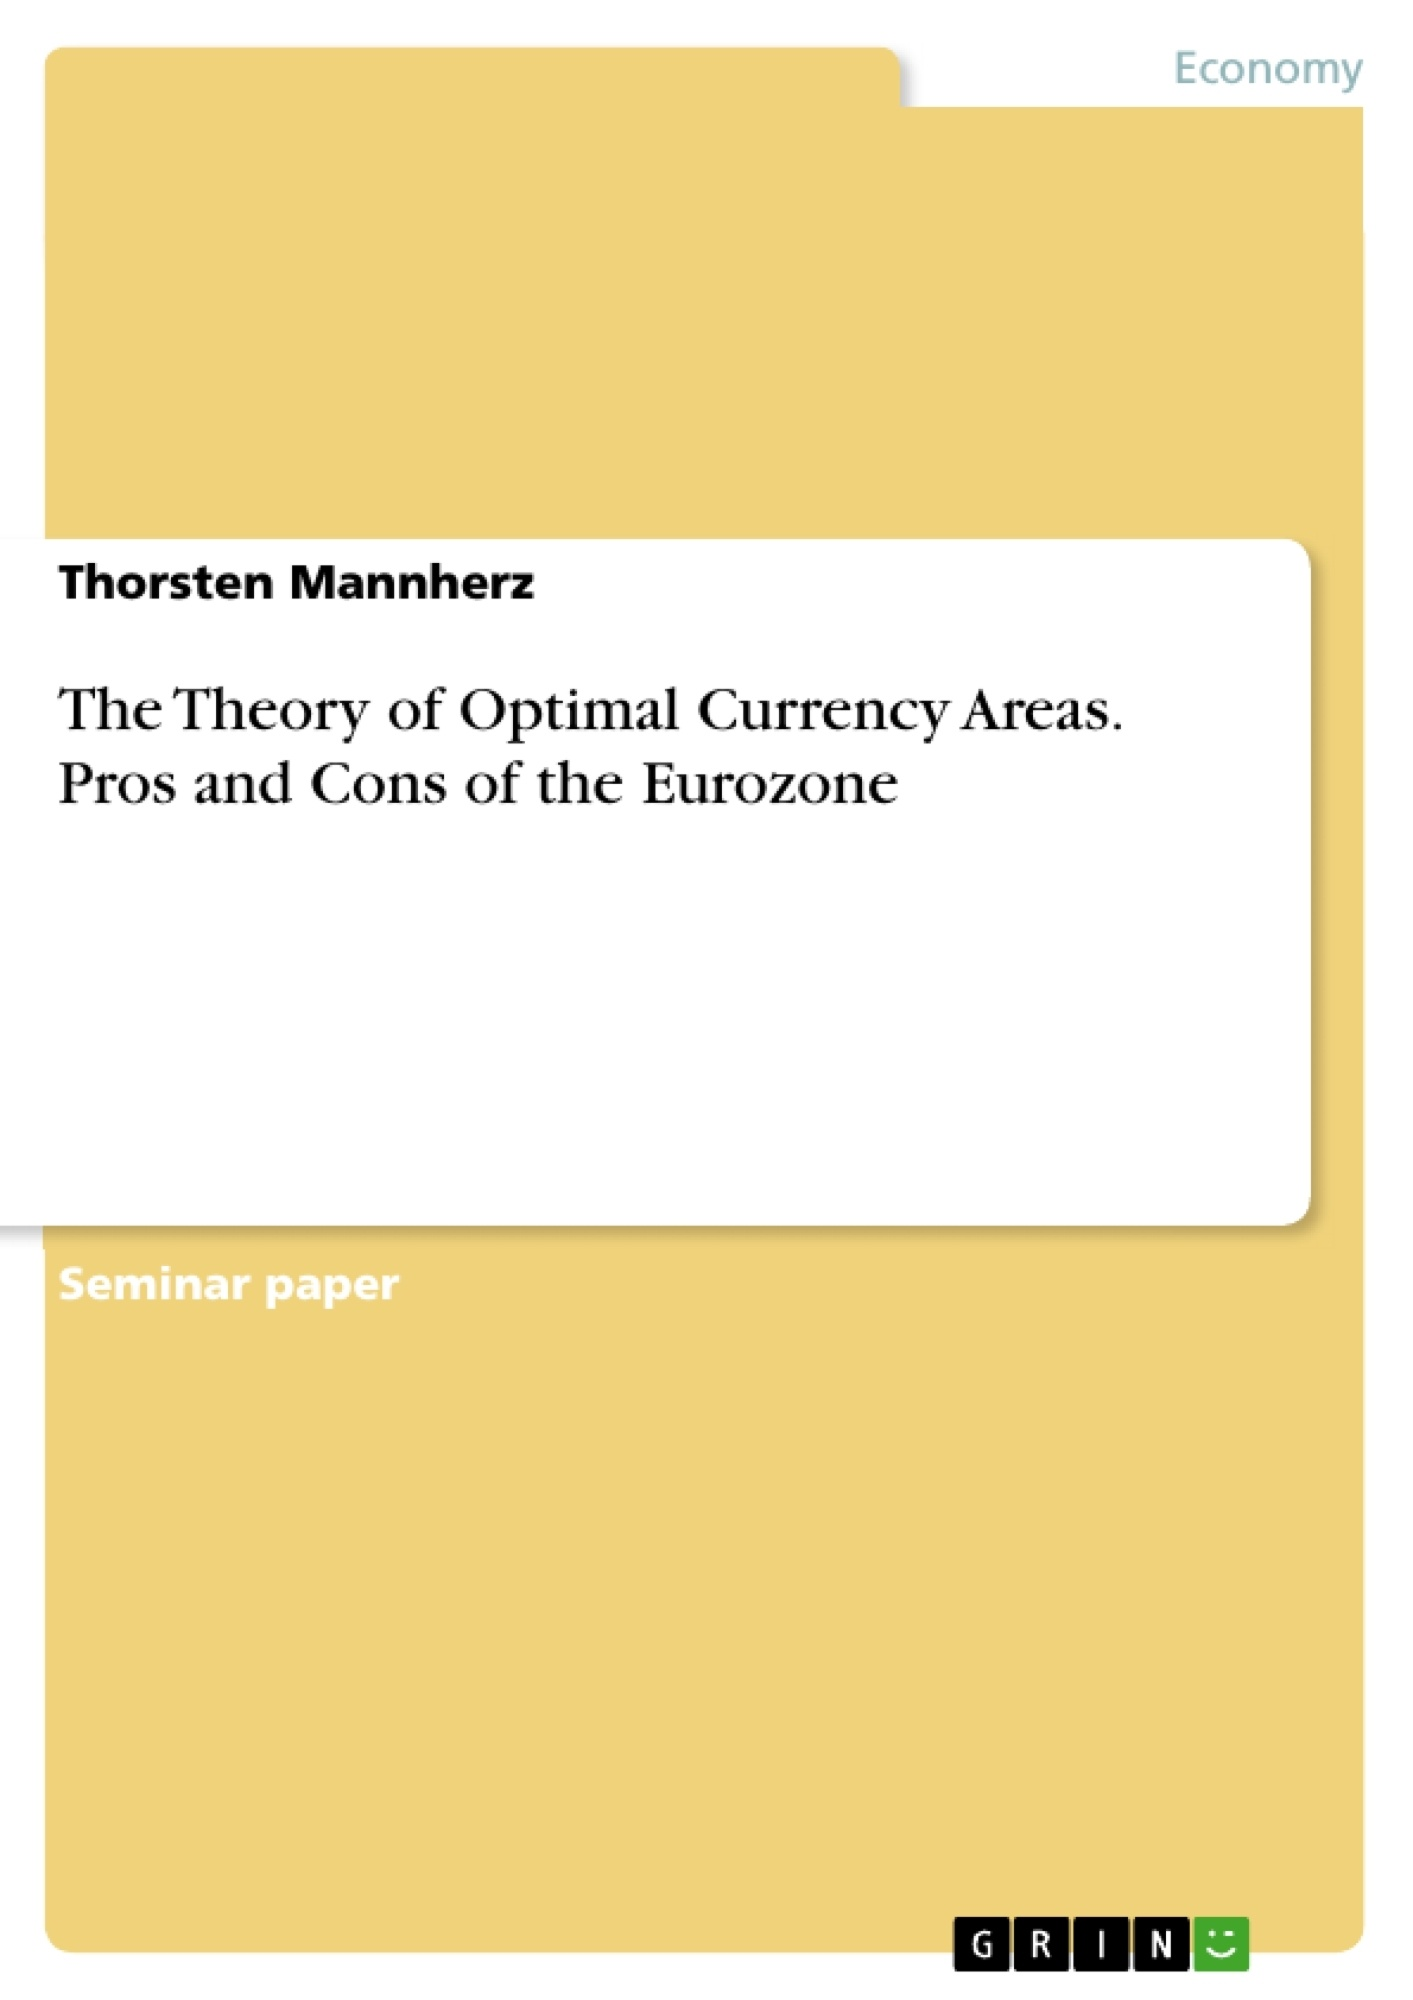 Title: The Theory of Optimal Currency Areas. Pros and Cons of the Eurozone